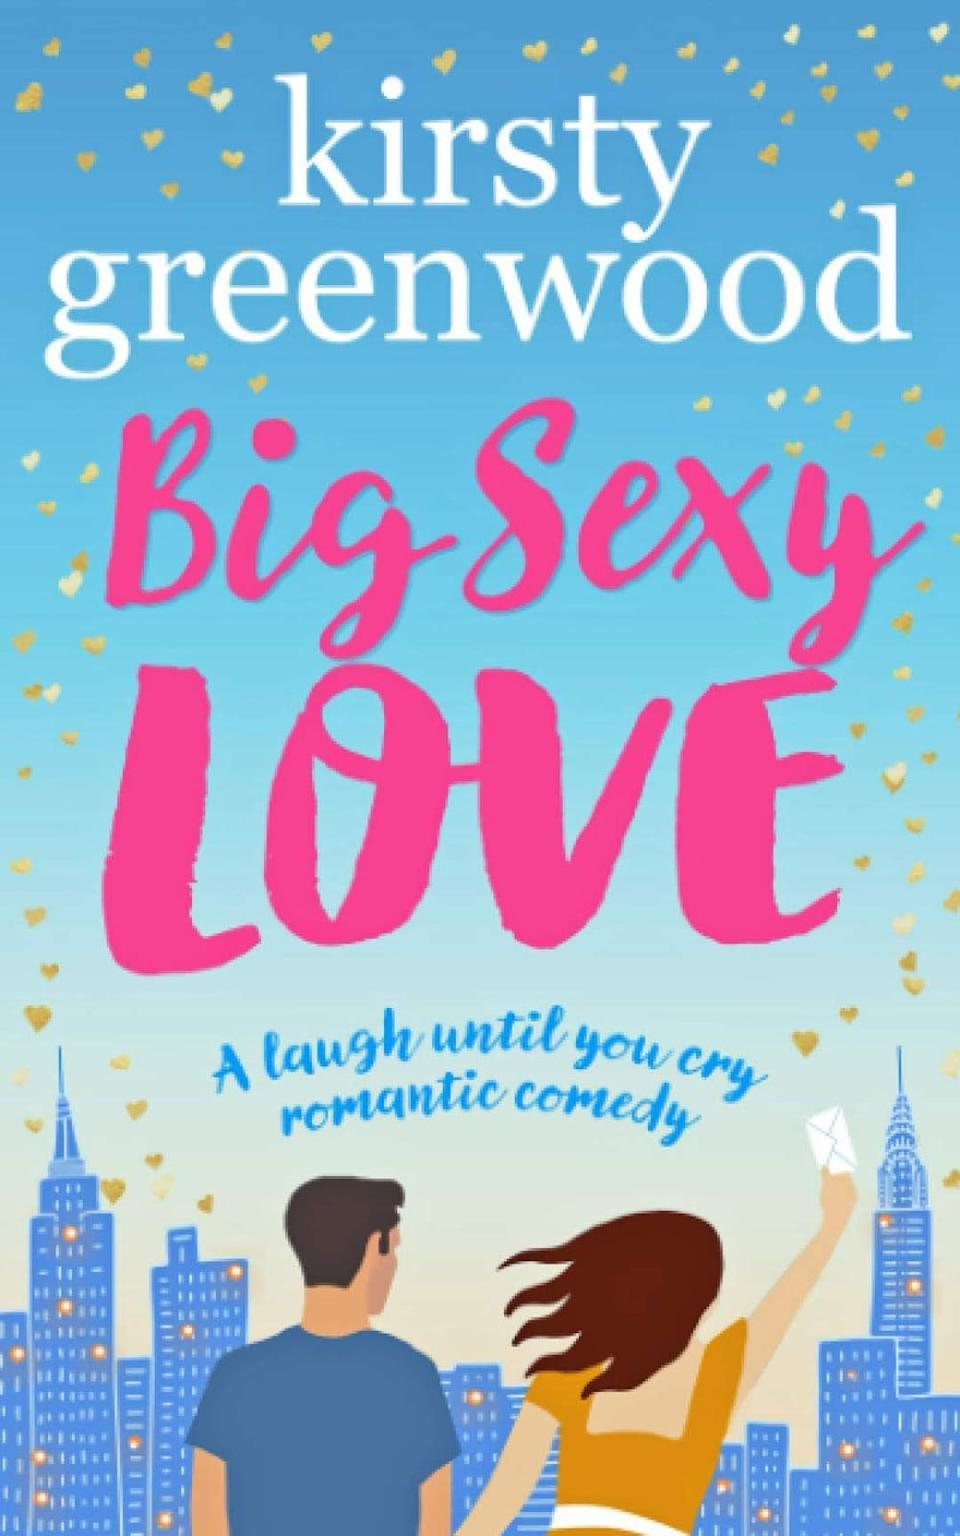 """<p>Speaking of Sophie Kinsella, Kirsty Greenwood's books are similar and highly underrated in my opinion. <span><strong>Big Sexy Love</strong></span> ($14) is even described as """"a laugh until you cry romantic comedy"""" right on the cover. In the story, Olive plays everything safe in her small hometown, but when her dying best friend has one final request for Olive to hand deliver a letter in New York City, she's sent on a crazy, whirlwind adventure of a lifetime.</p> <p>This was one of the funniest books I've ever read, so there's no doubt it would make for a fantastically comical movie. While there are some kooky supporting characters, downright hysterical situations, a goose chase all across Manhattan, and of course, an unexpected romance, I love how, at its core, this story is a love letter to Olive herself and the power of friendship.</p>"""